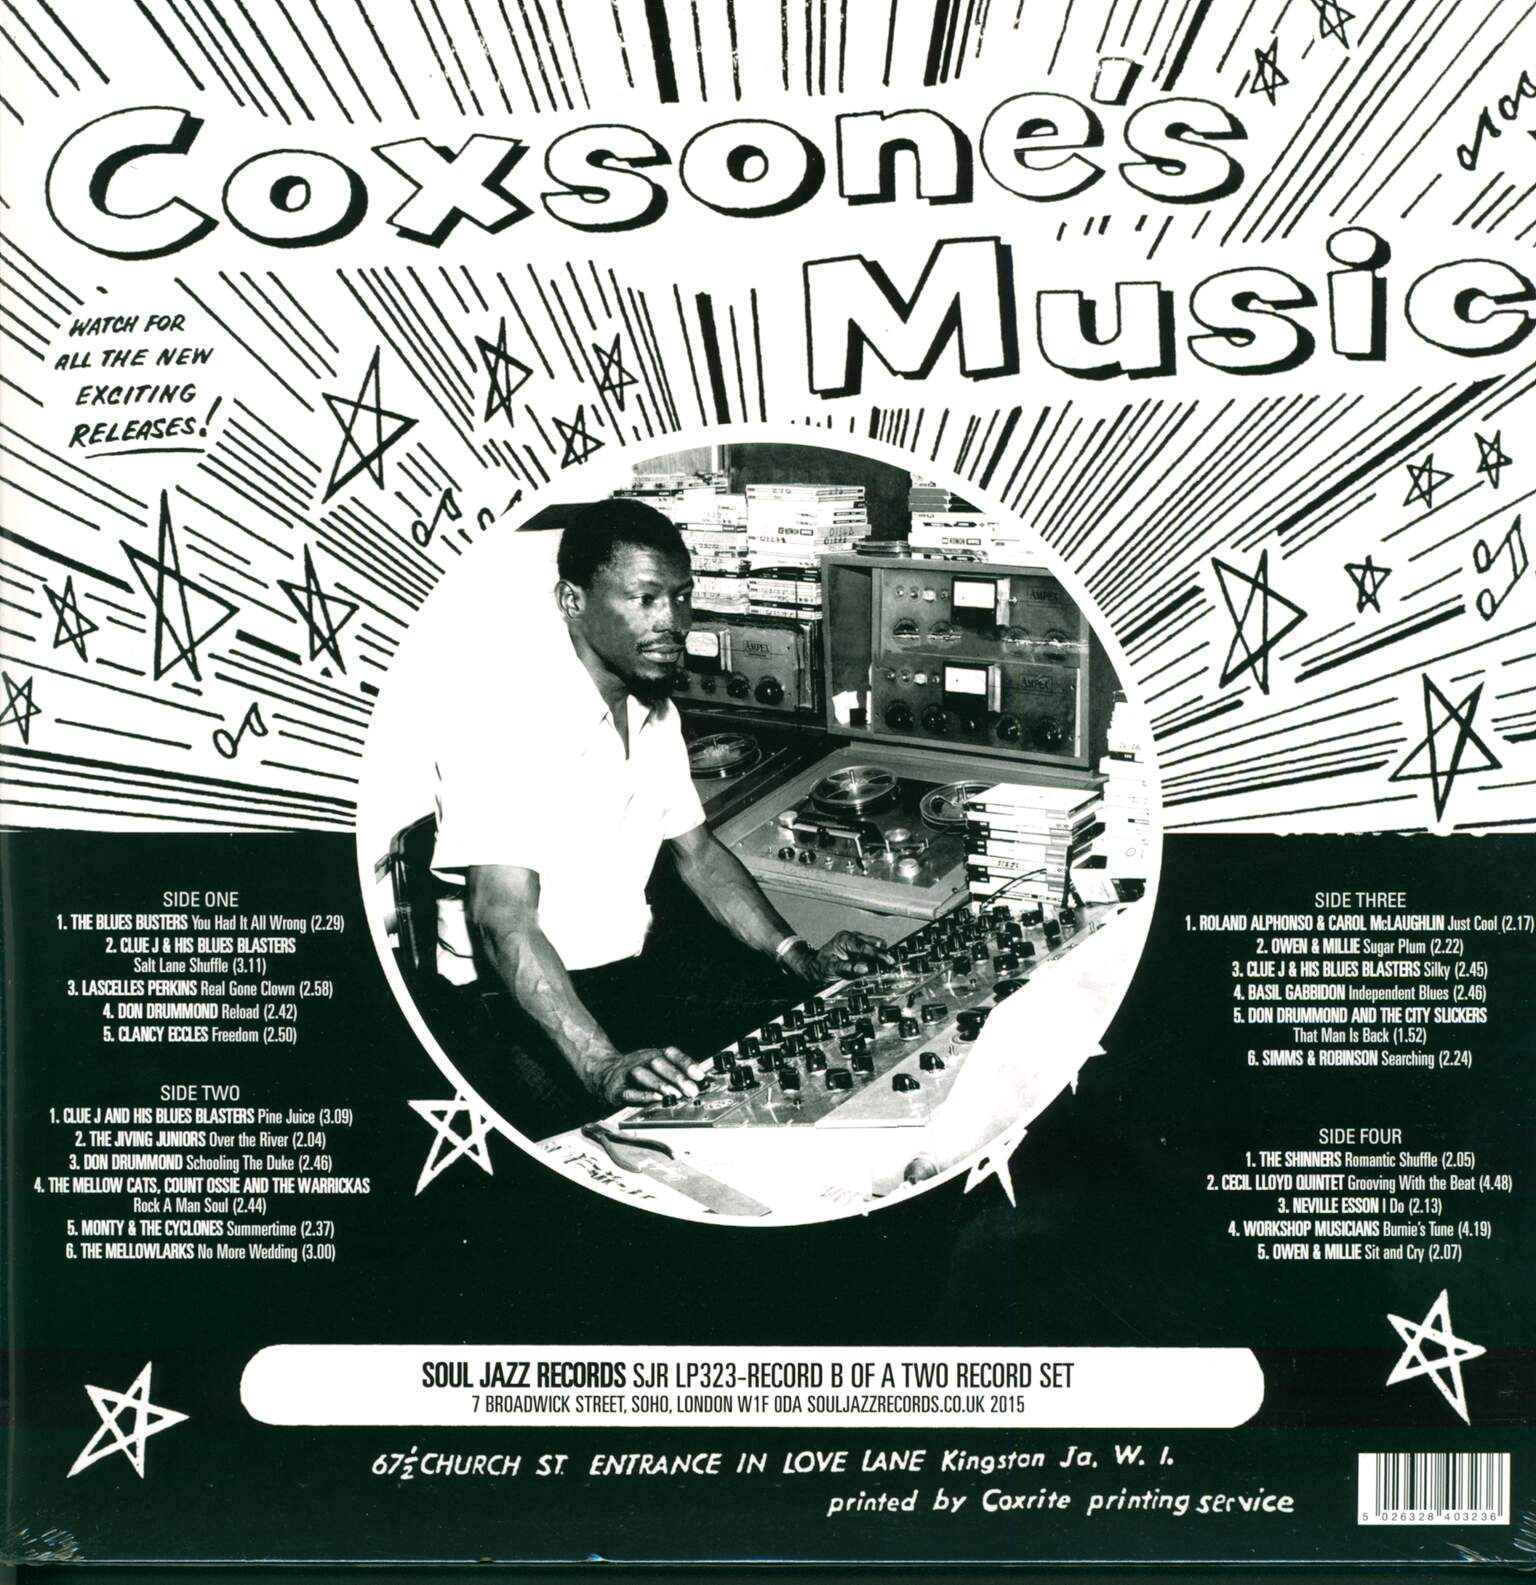 Various: Coxsone's Music (The First Recordings Of Sir Coxsone The Downbeat 1960-62), 2×LP (Vinyl)